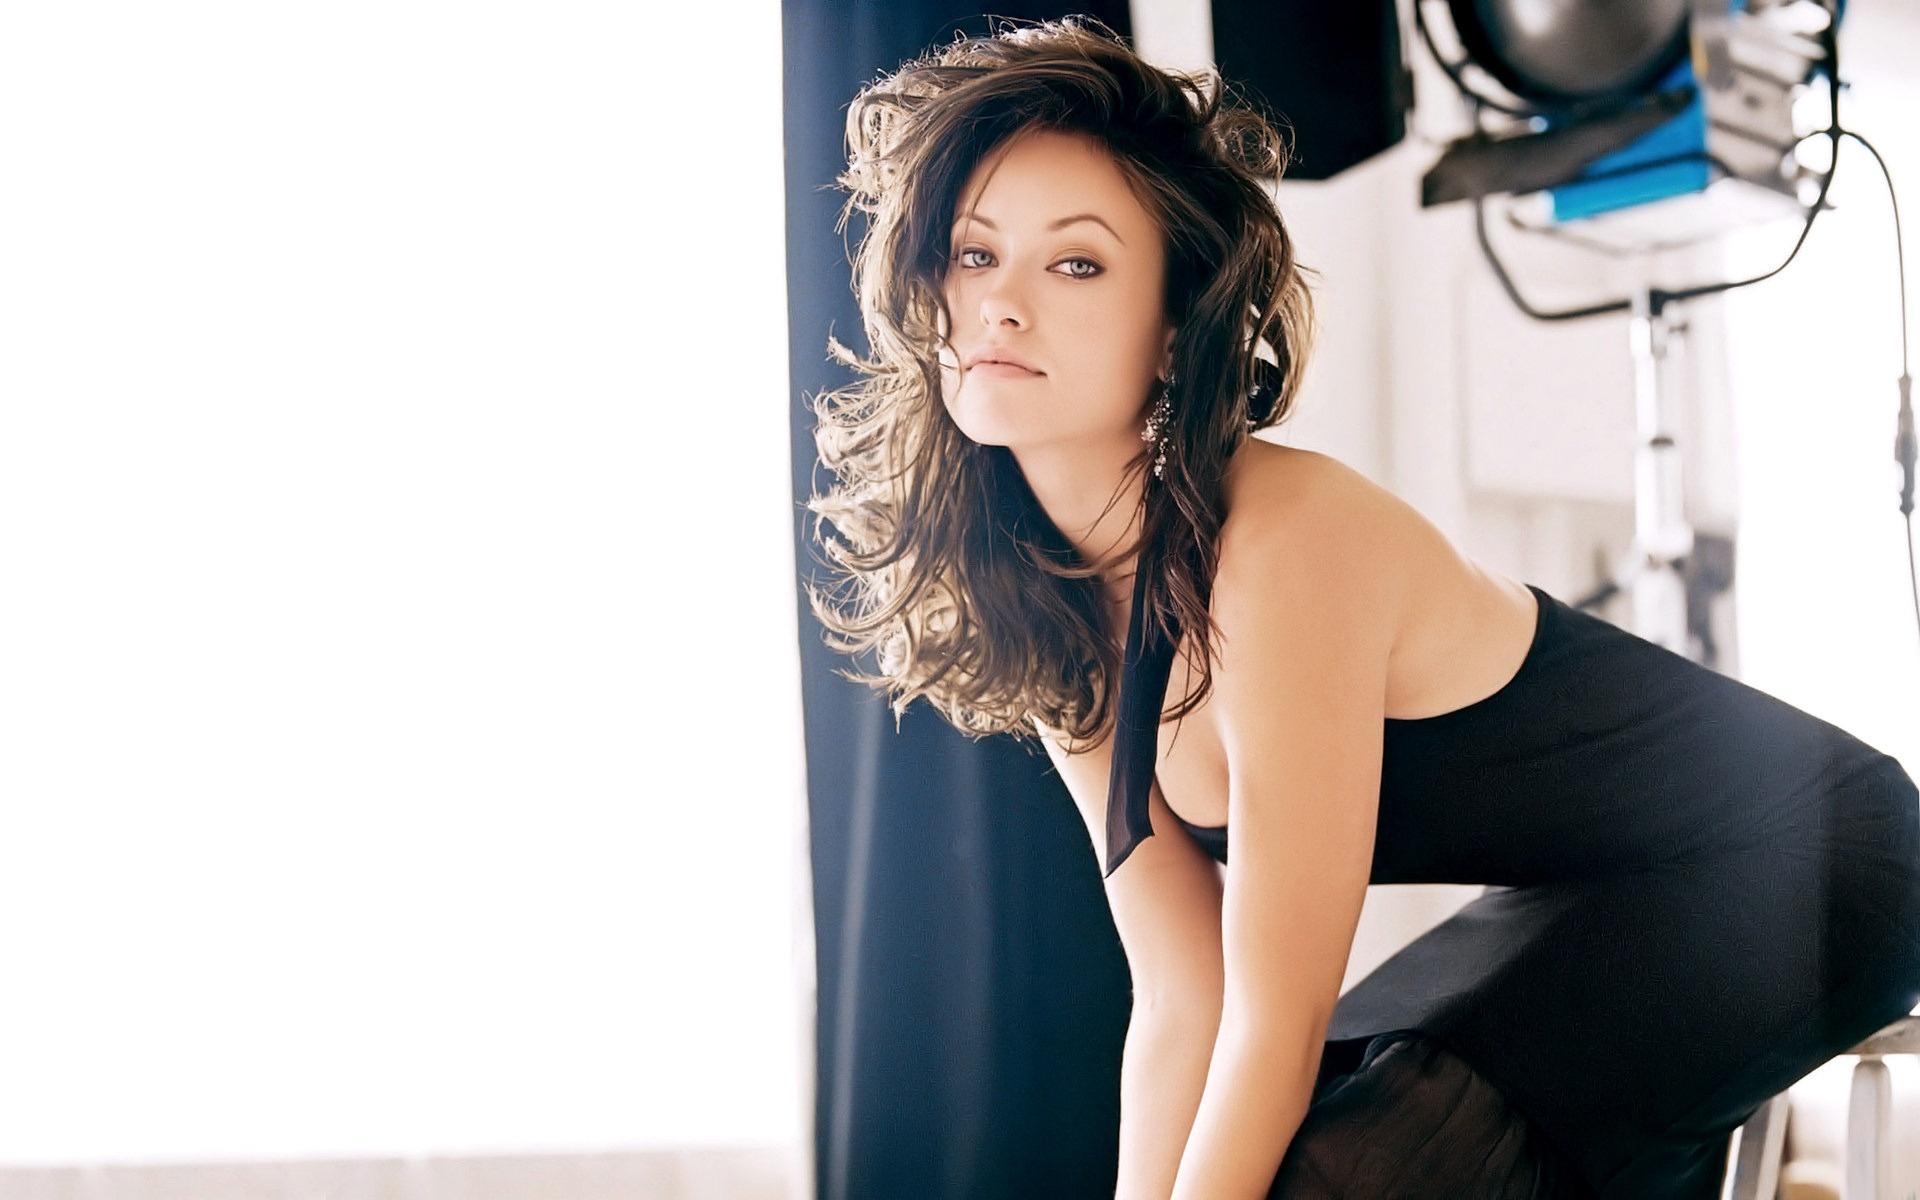 Wallpaper Olivia Wilde 04 1920x1200 Hd Picture Image